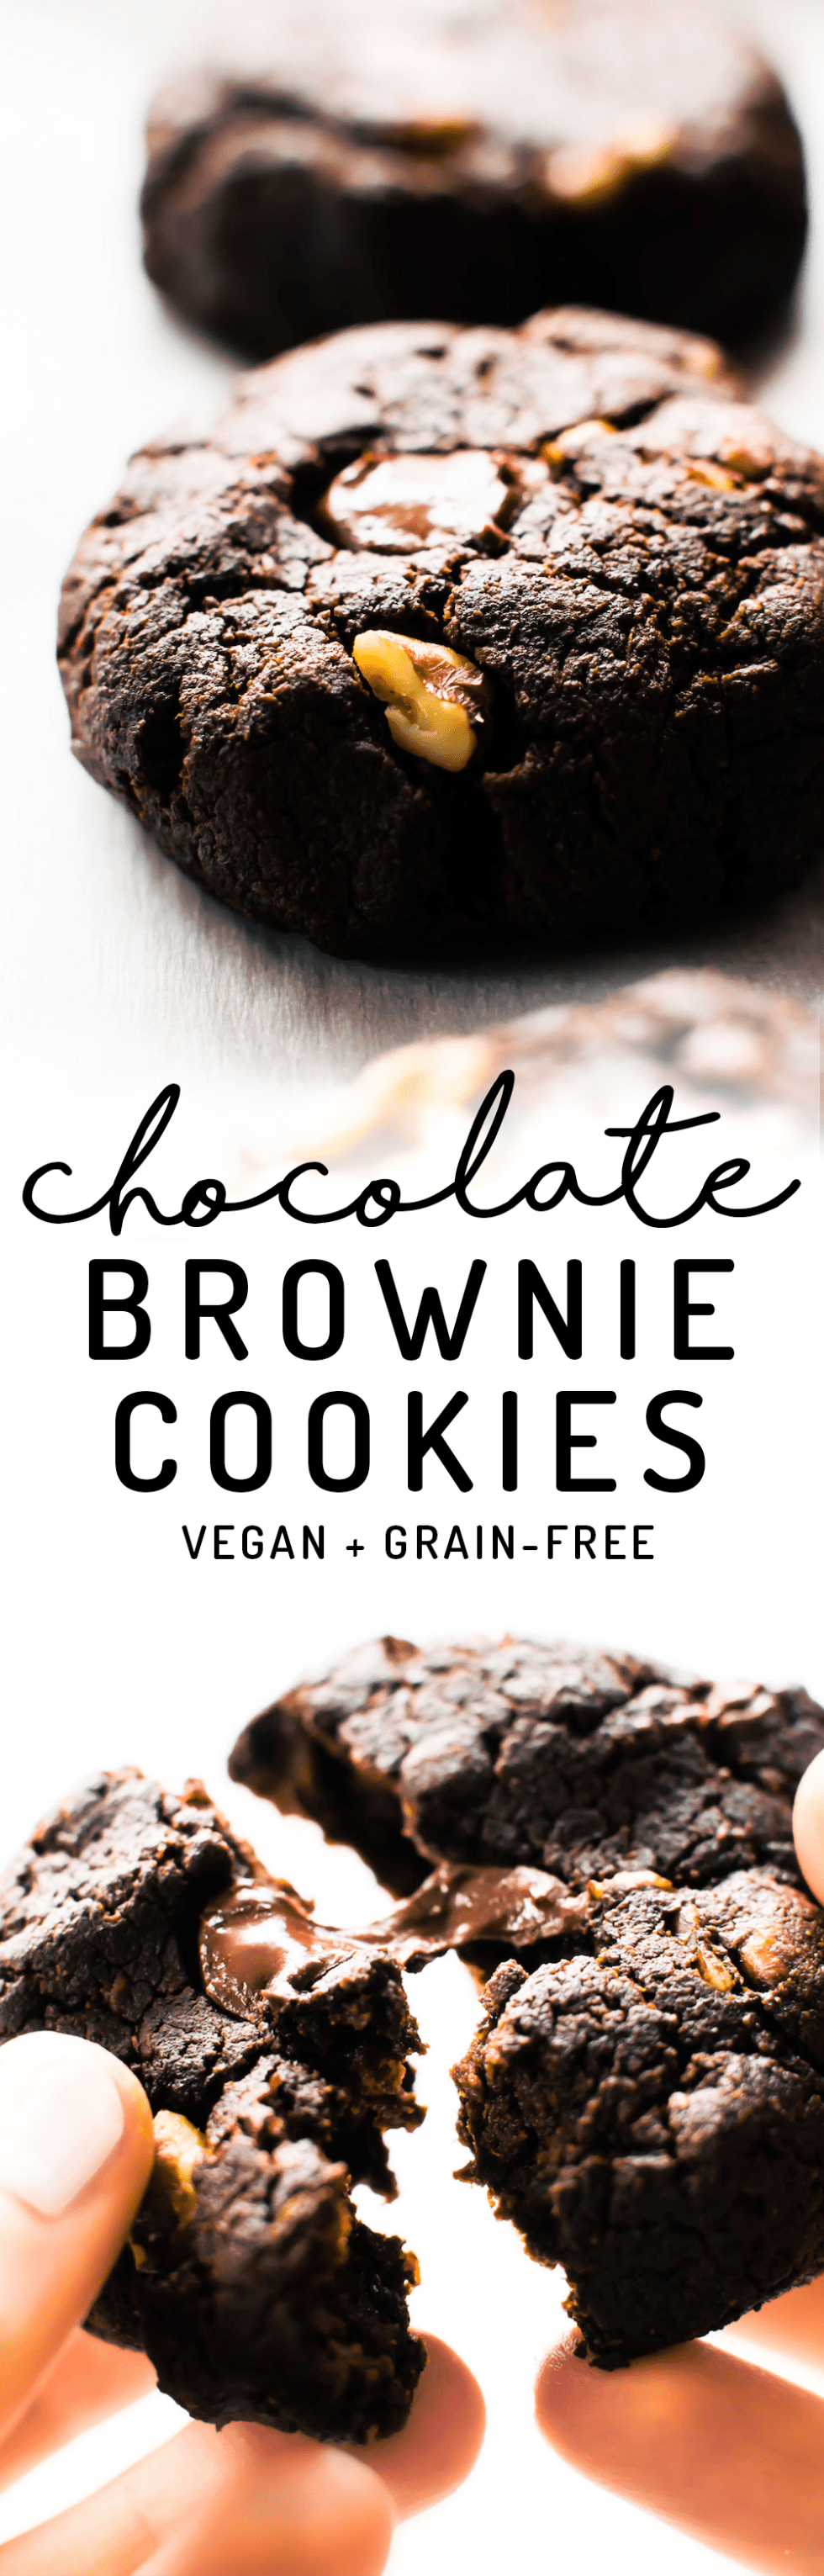 A healthy dessert hybrid loaded with gooey chocolate chips, walnut chunks, and so much fudgy flavor! #vegan #paleo #chocolate